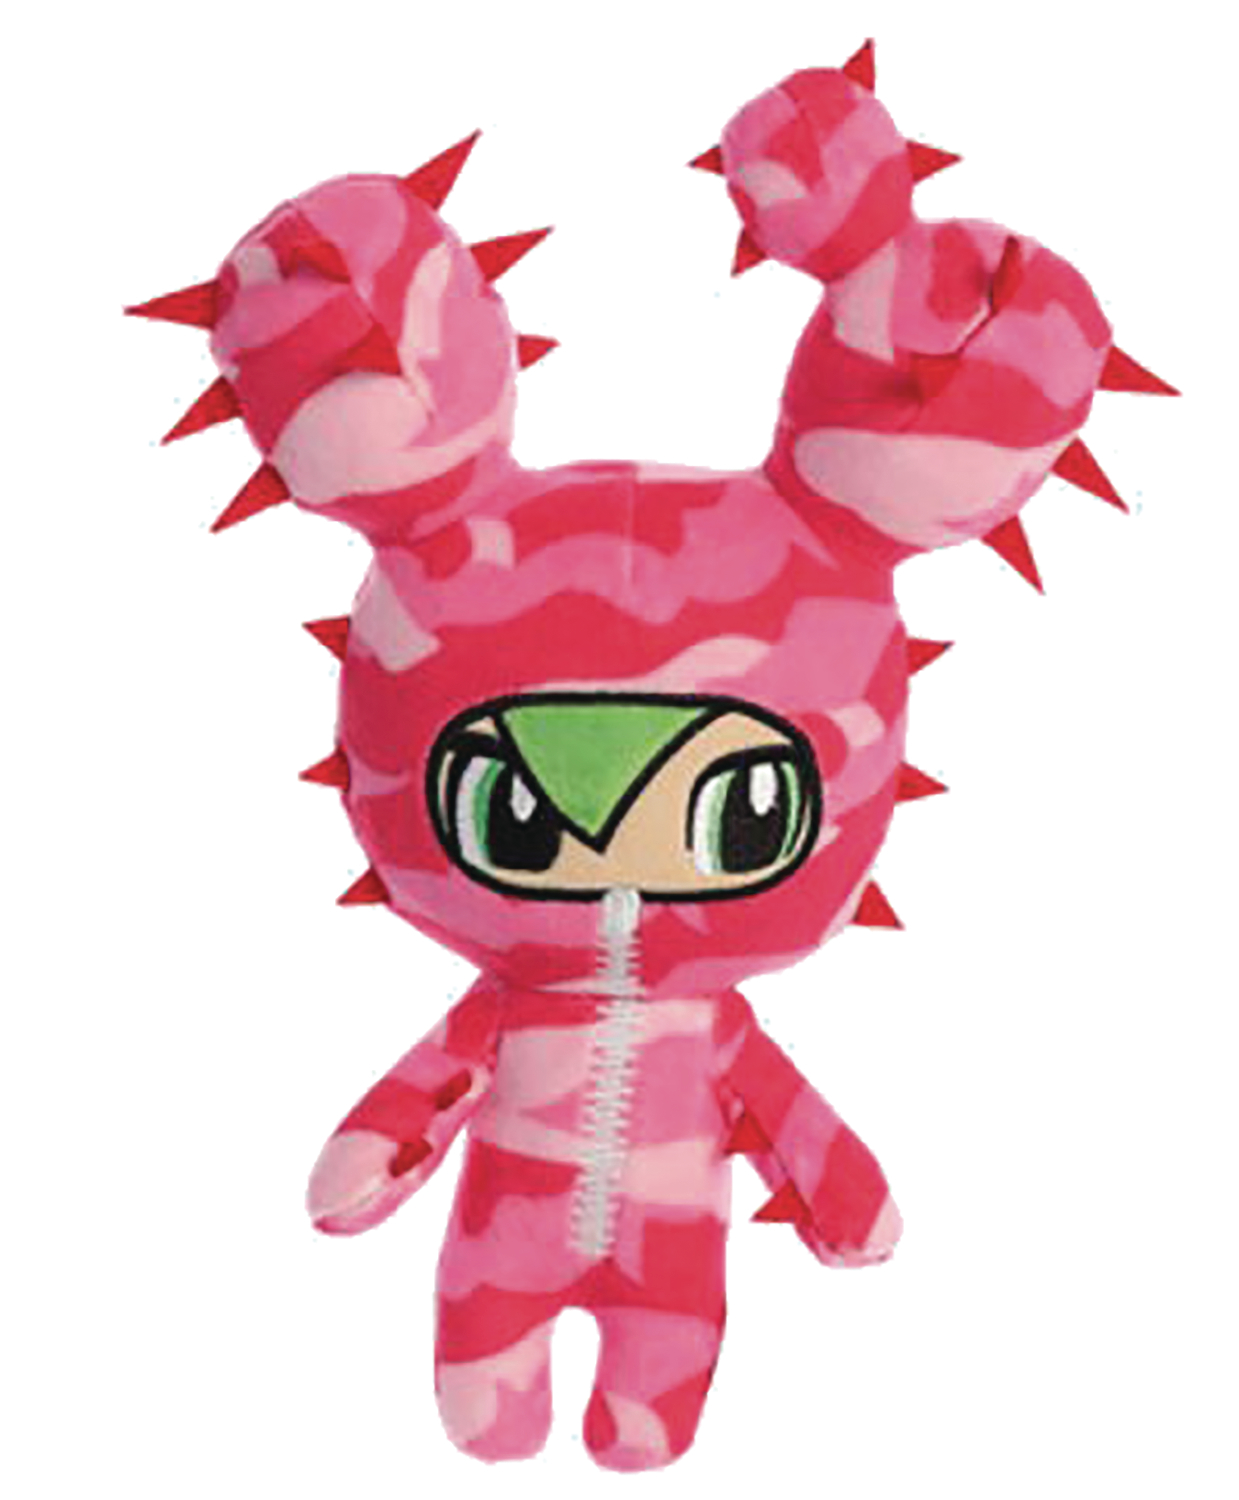 TOKIDOKI CACTUS FRIENDS SABOCHAN 10 IN PLUSH